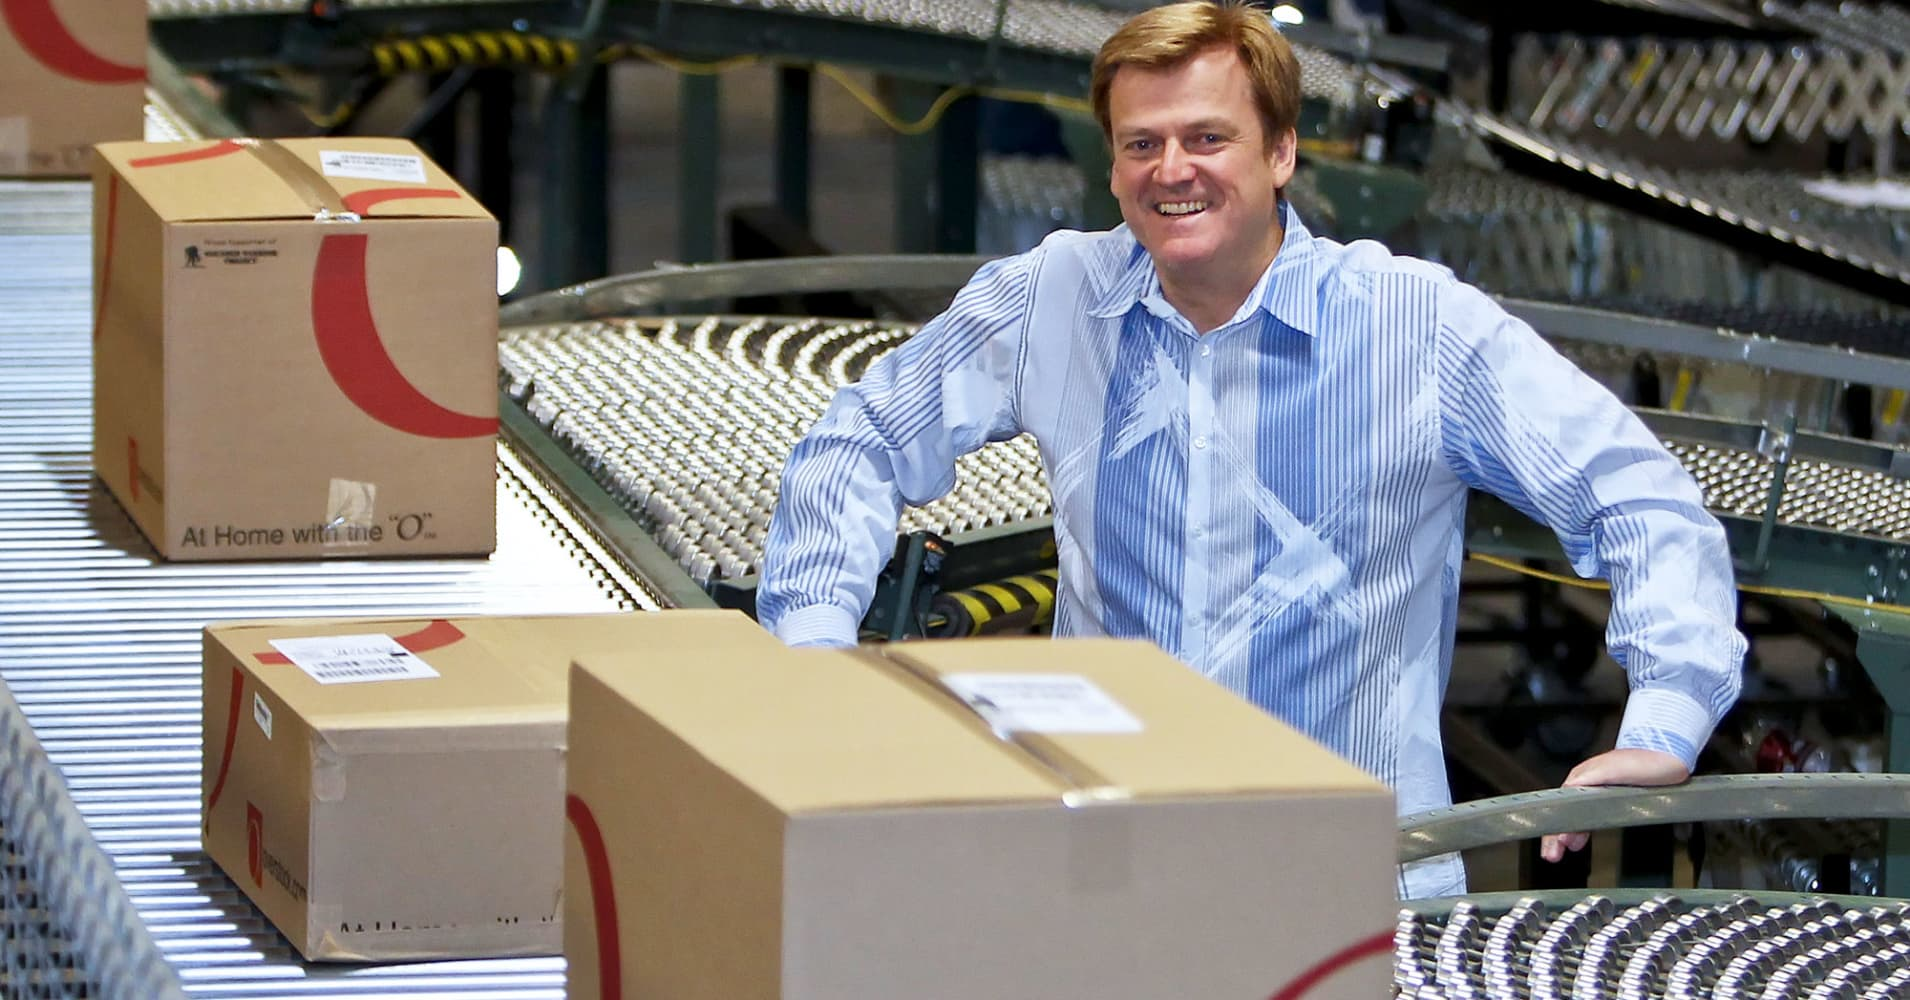 Overstock.com CEO aims to sell or reorganize e-commerce biz so he can focus on blockchain